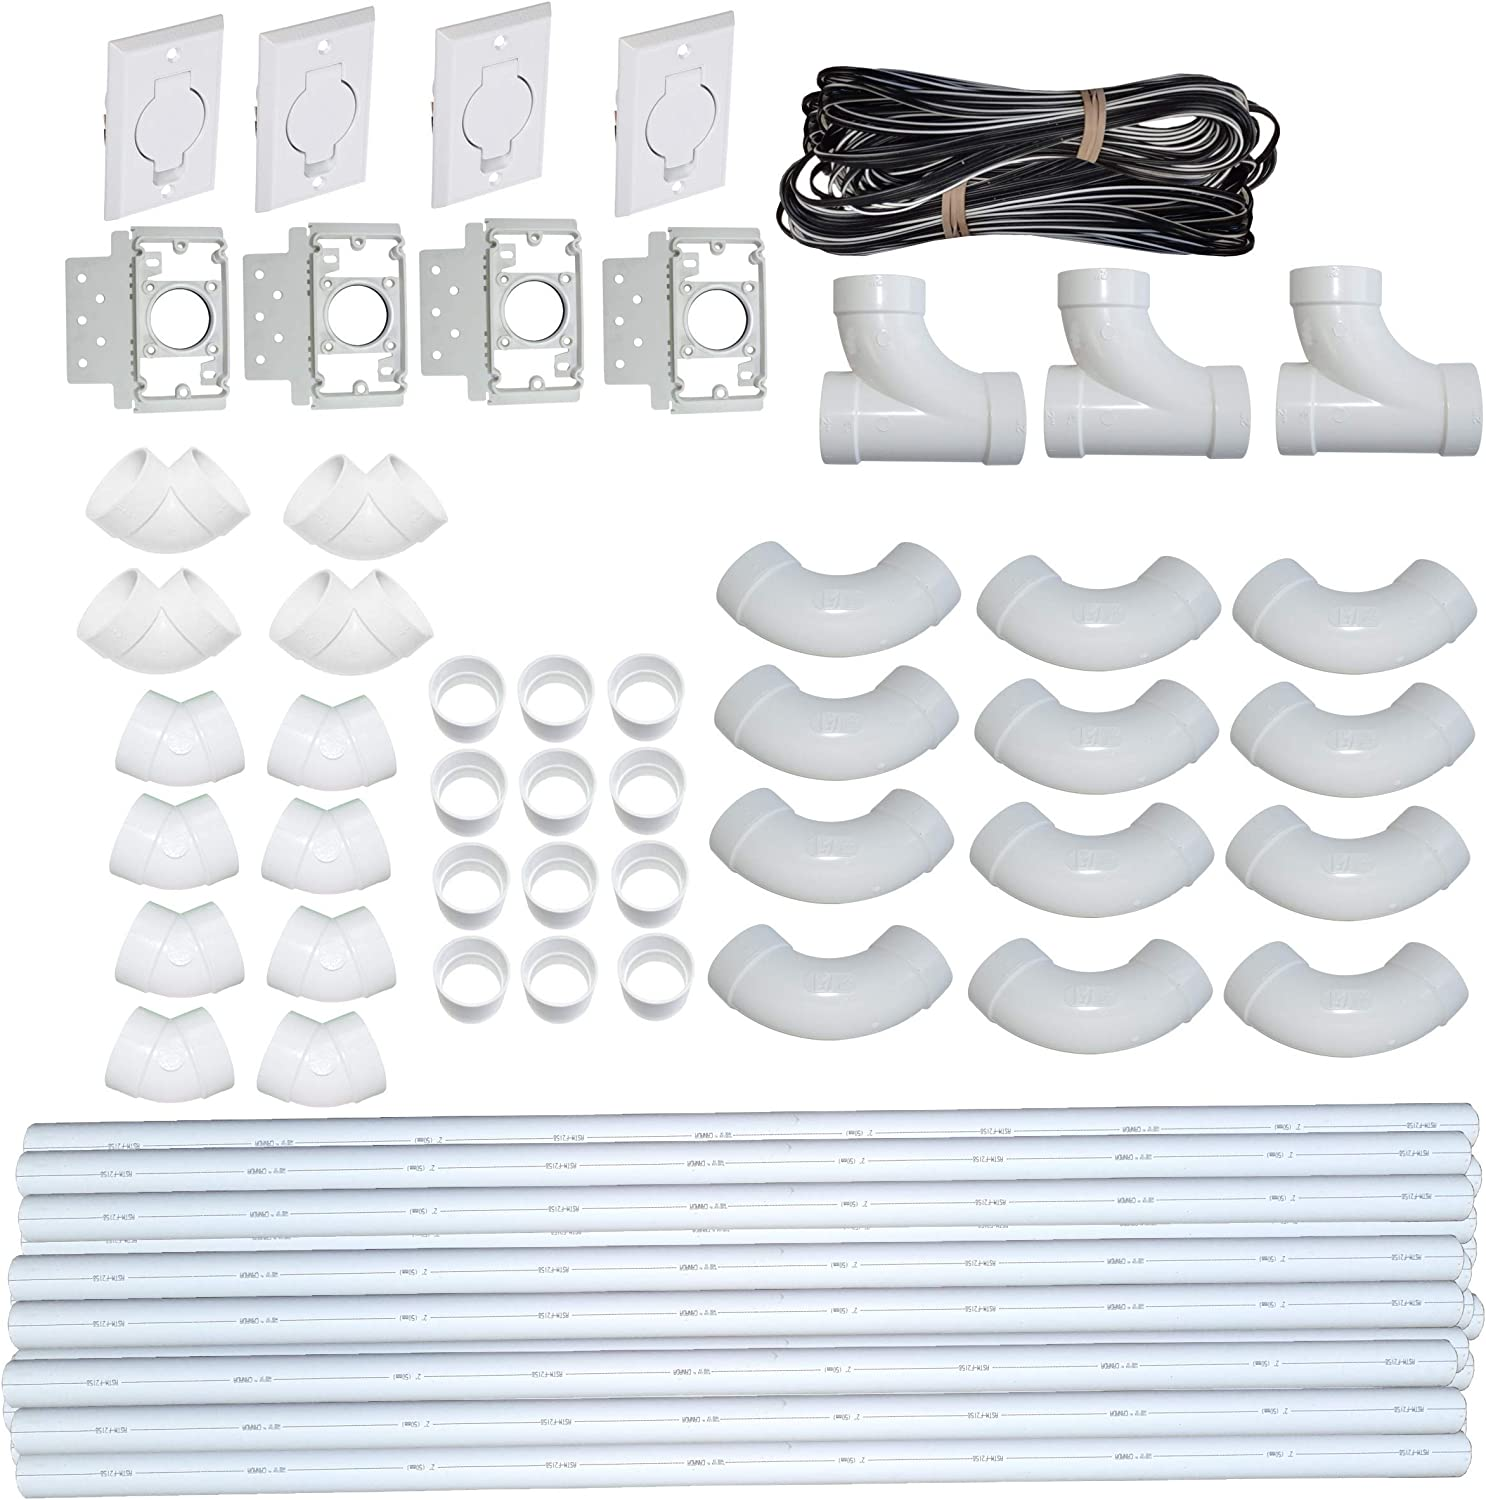 ZVac Central Vacuum Pipe & Inlet Installation Kit with 100 Feet of Pipes & Wires Pre-Packaged with Wall Plates, Elbows, Brackets, Couplers & Sweep Ts Compatible with Central Vacuum NuTone, Beam & More